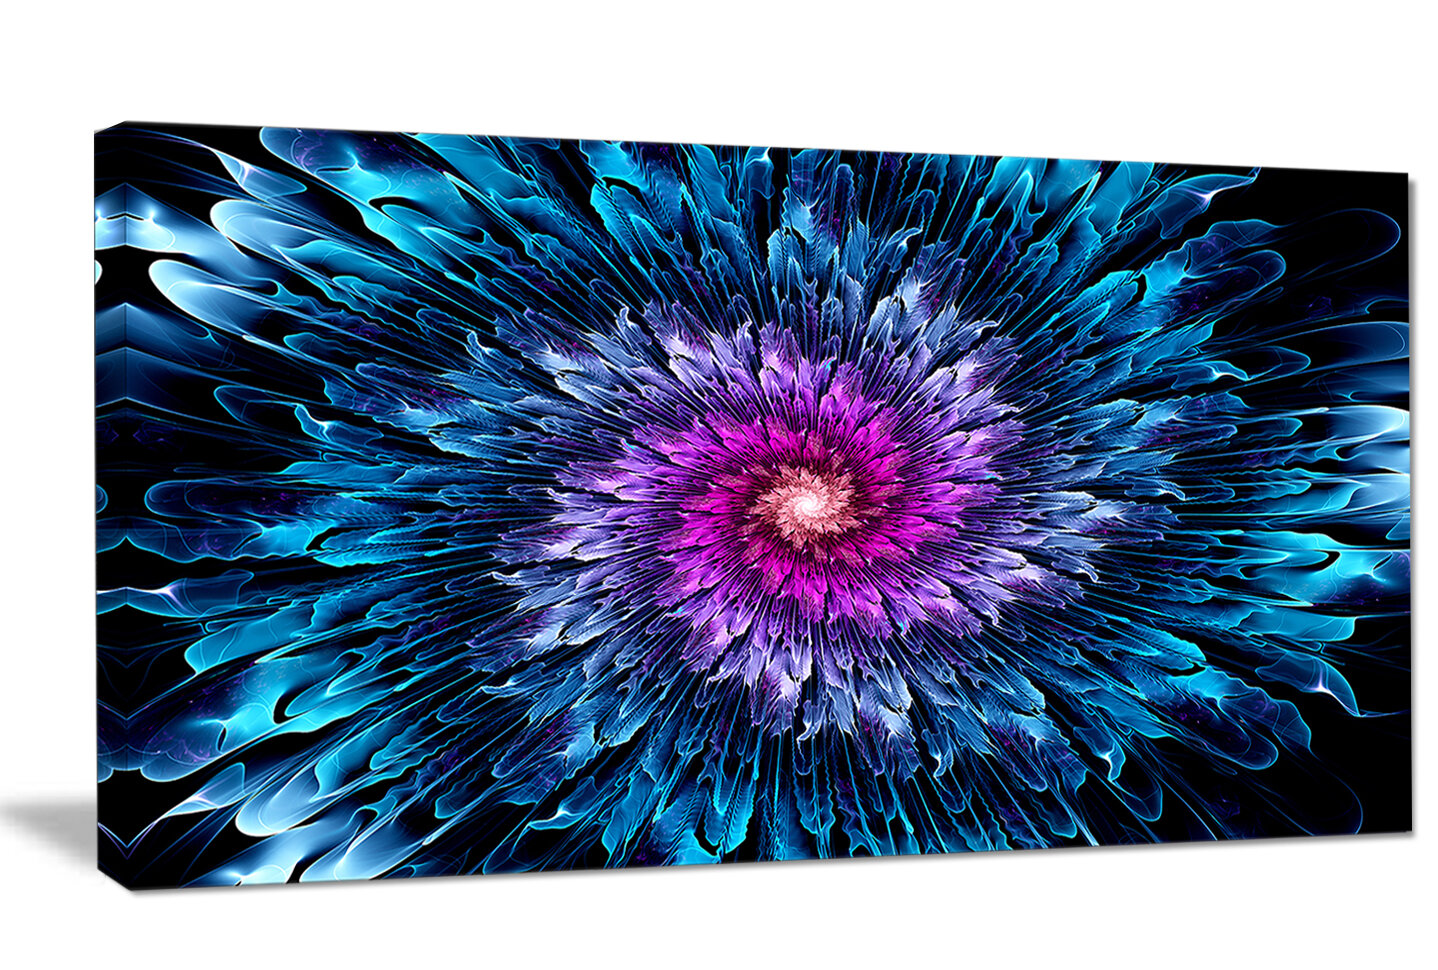 Designart Magical Glowing Fractal Flower Graphic Art On Wrapped Canvas Wayfair